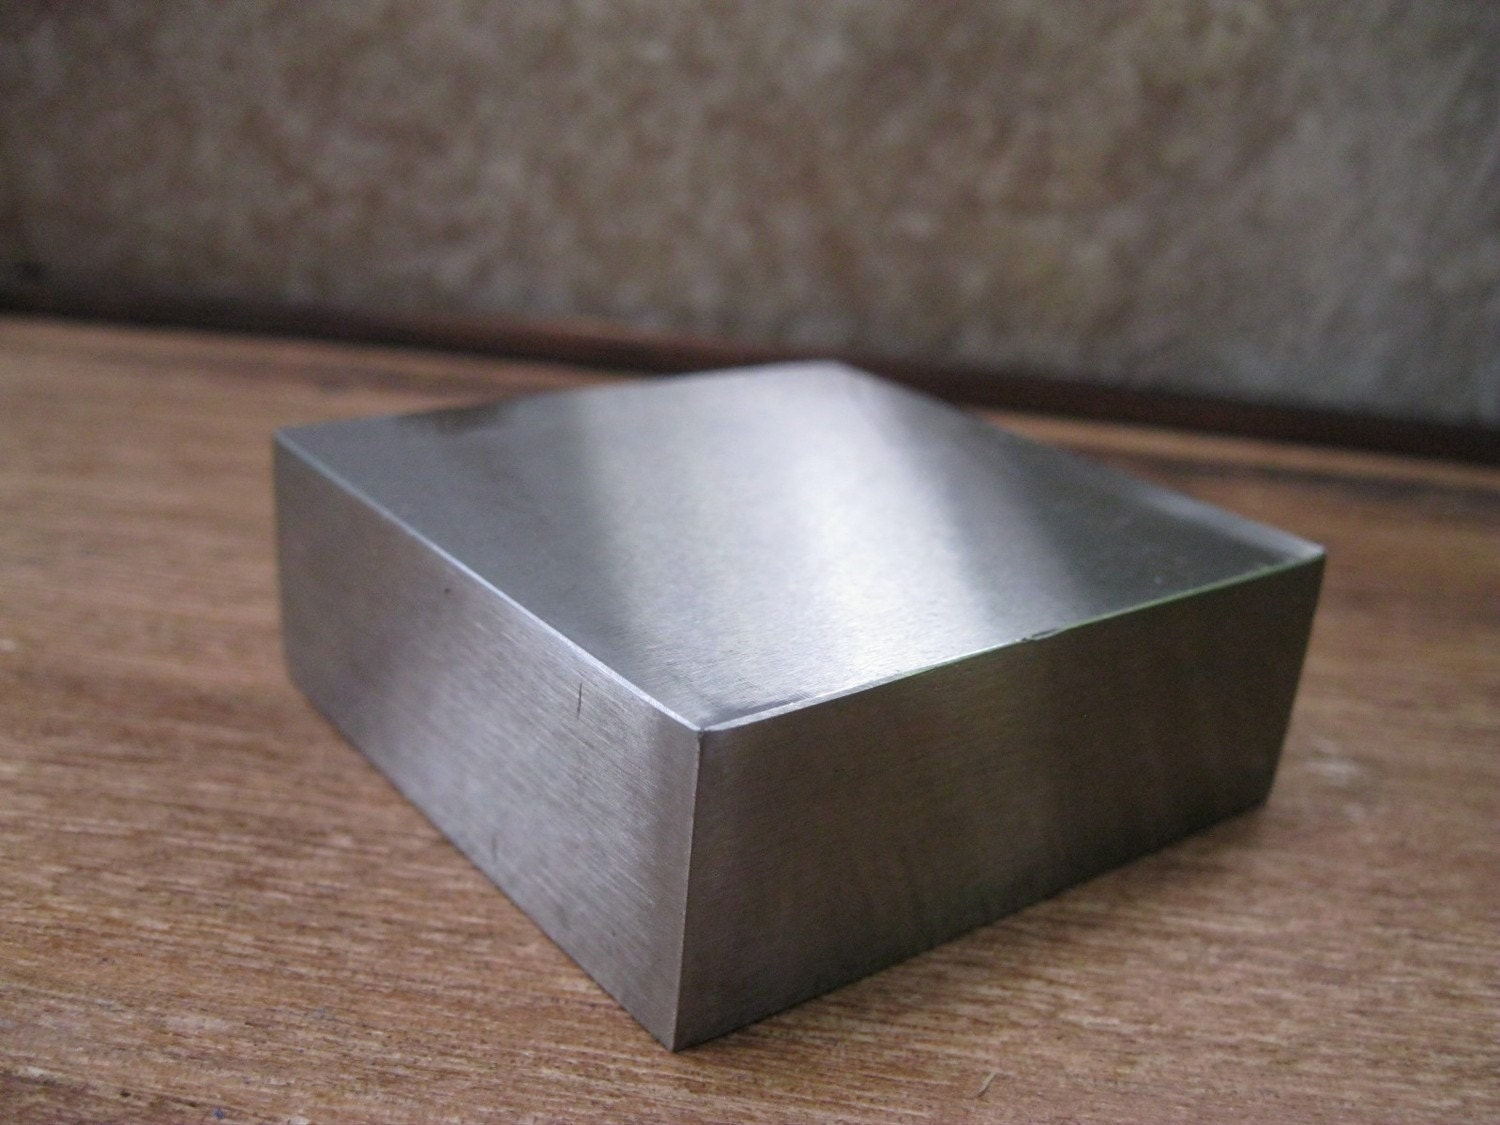 Steel Bench Block For Making Jewelry Stamping Hammering Metal